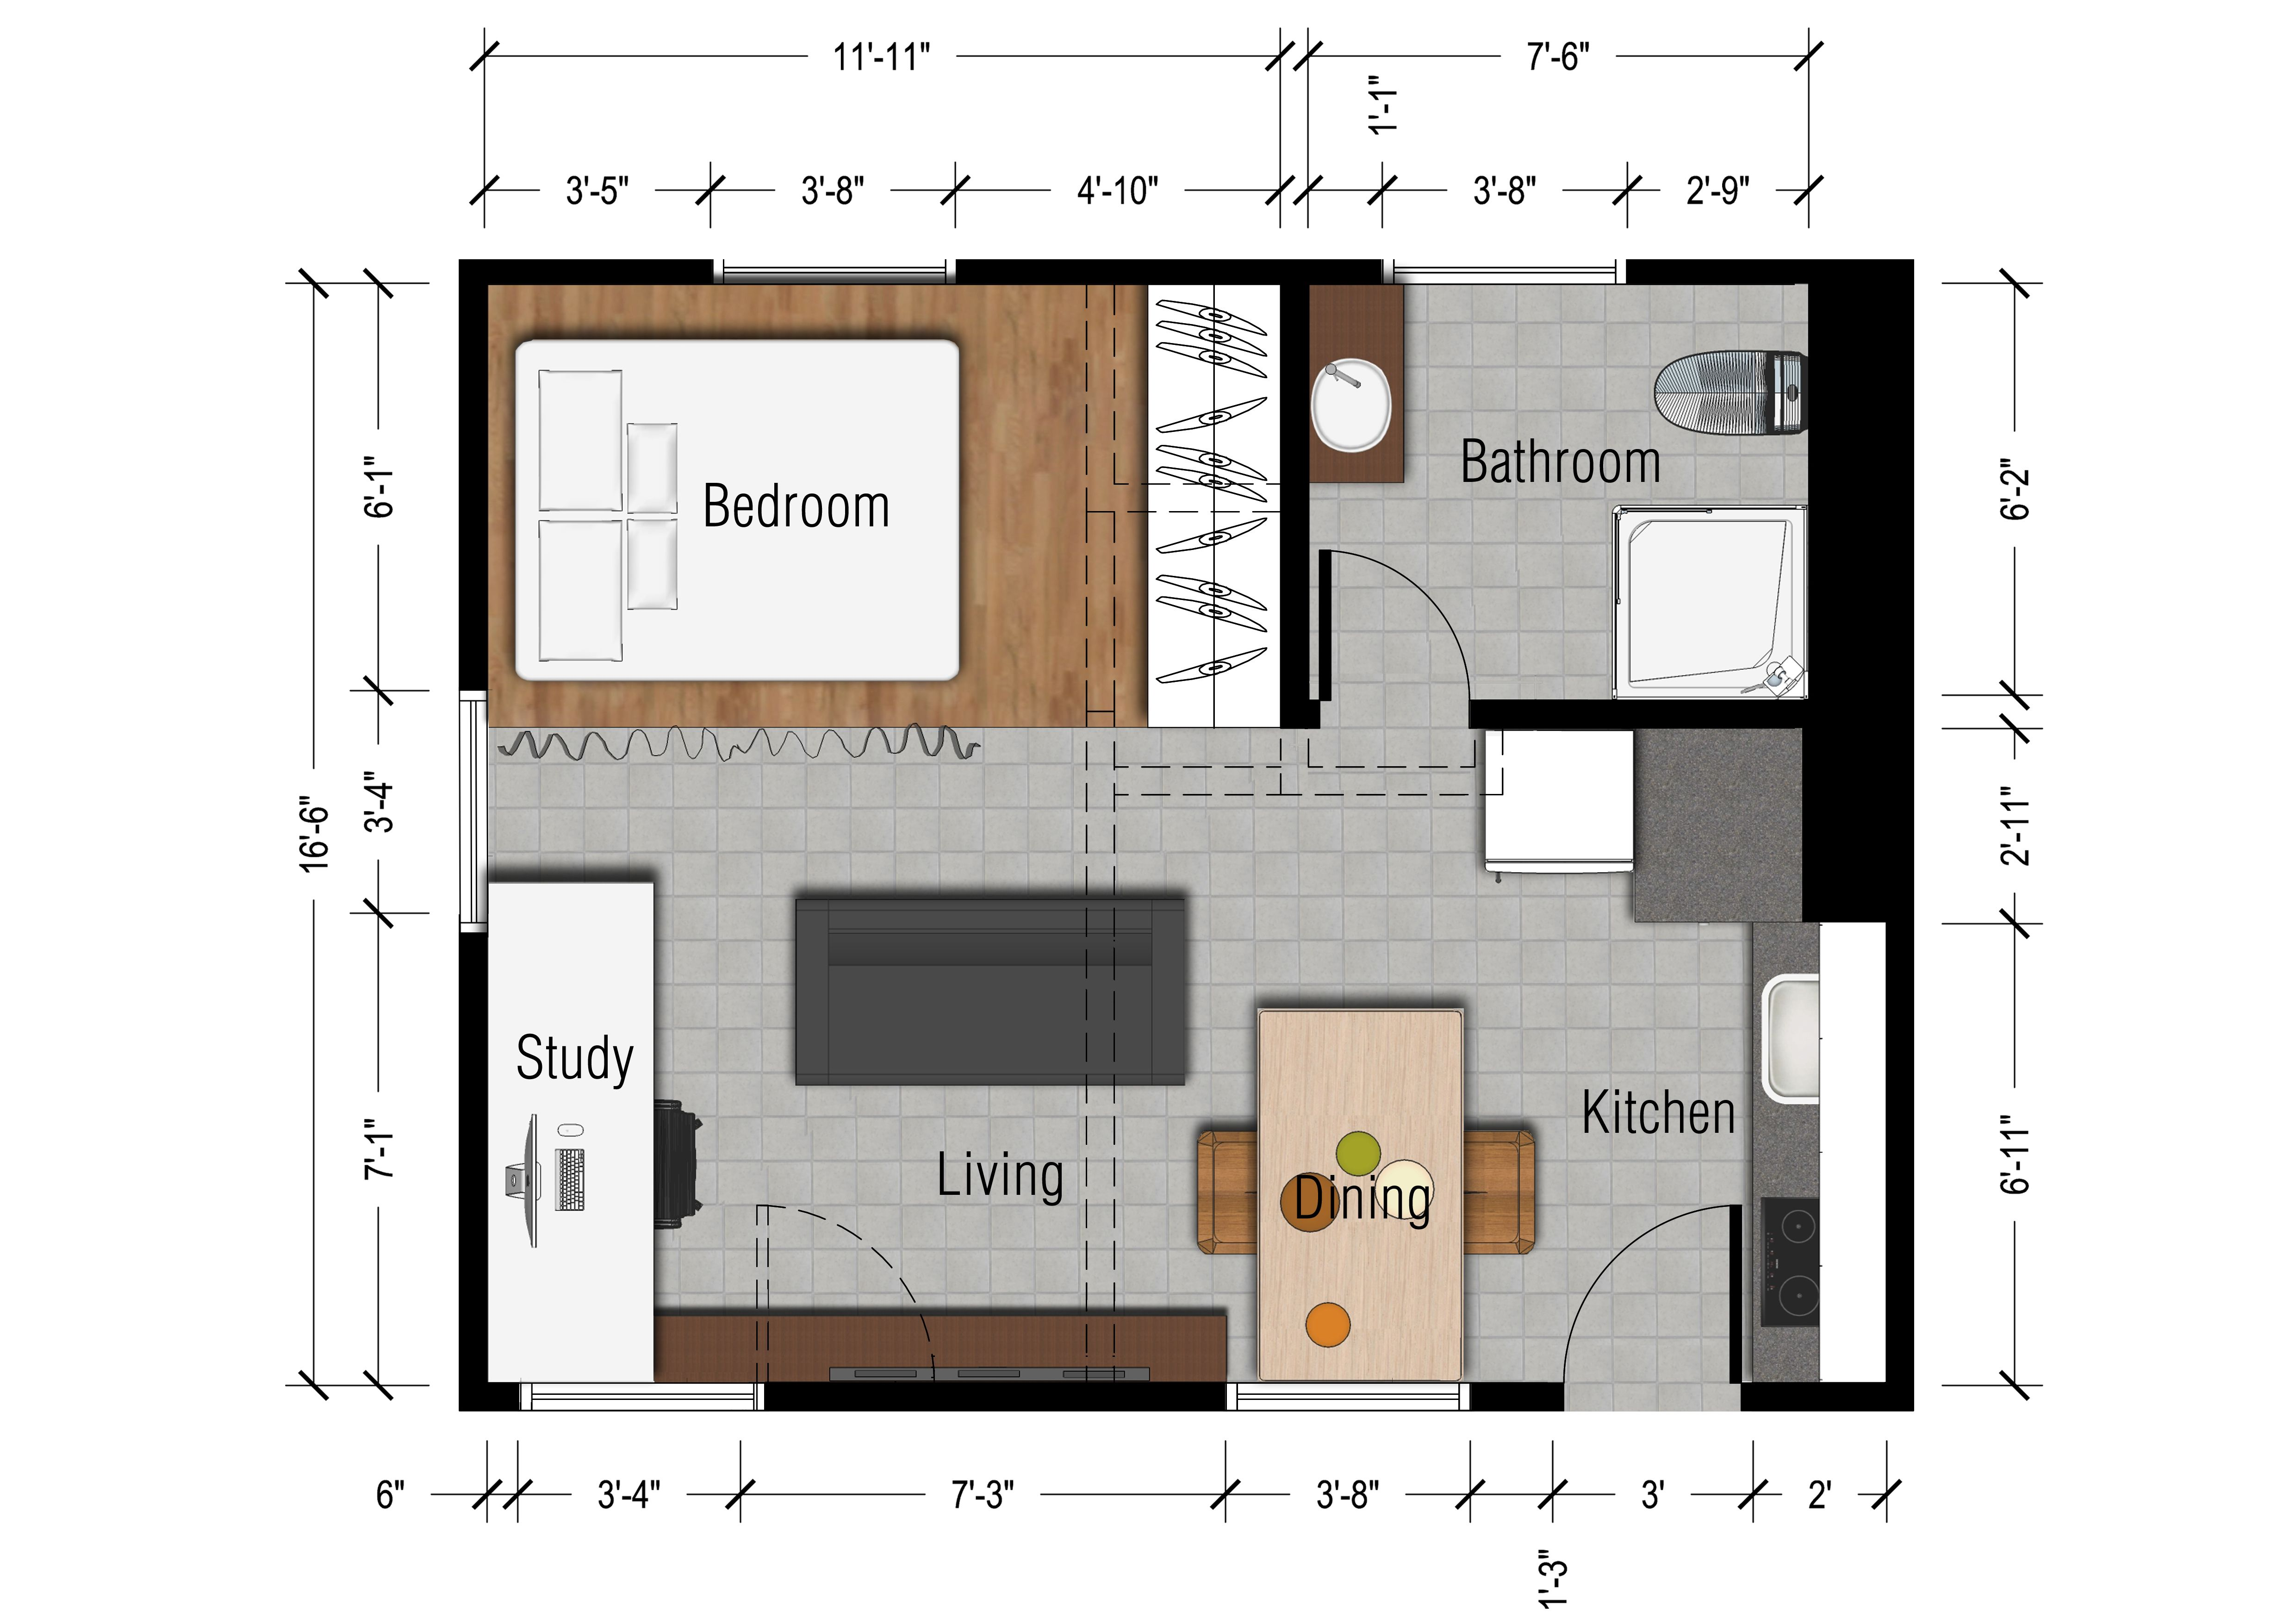 Studio apartments floor plan 300 square feet location Efficiency apartment floor plan